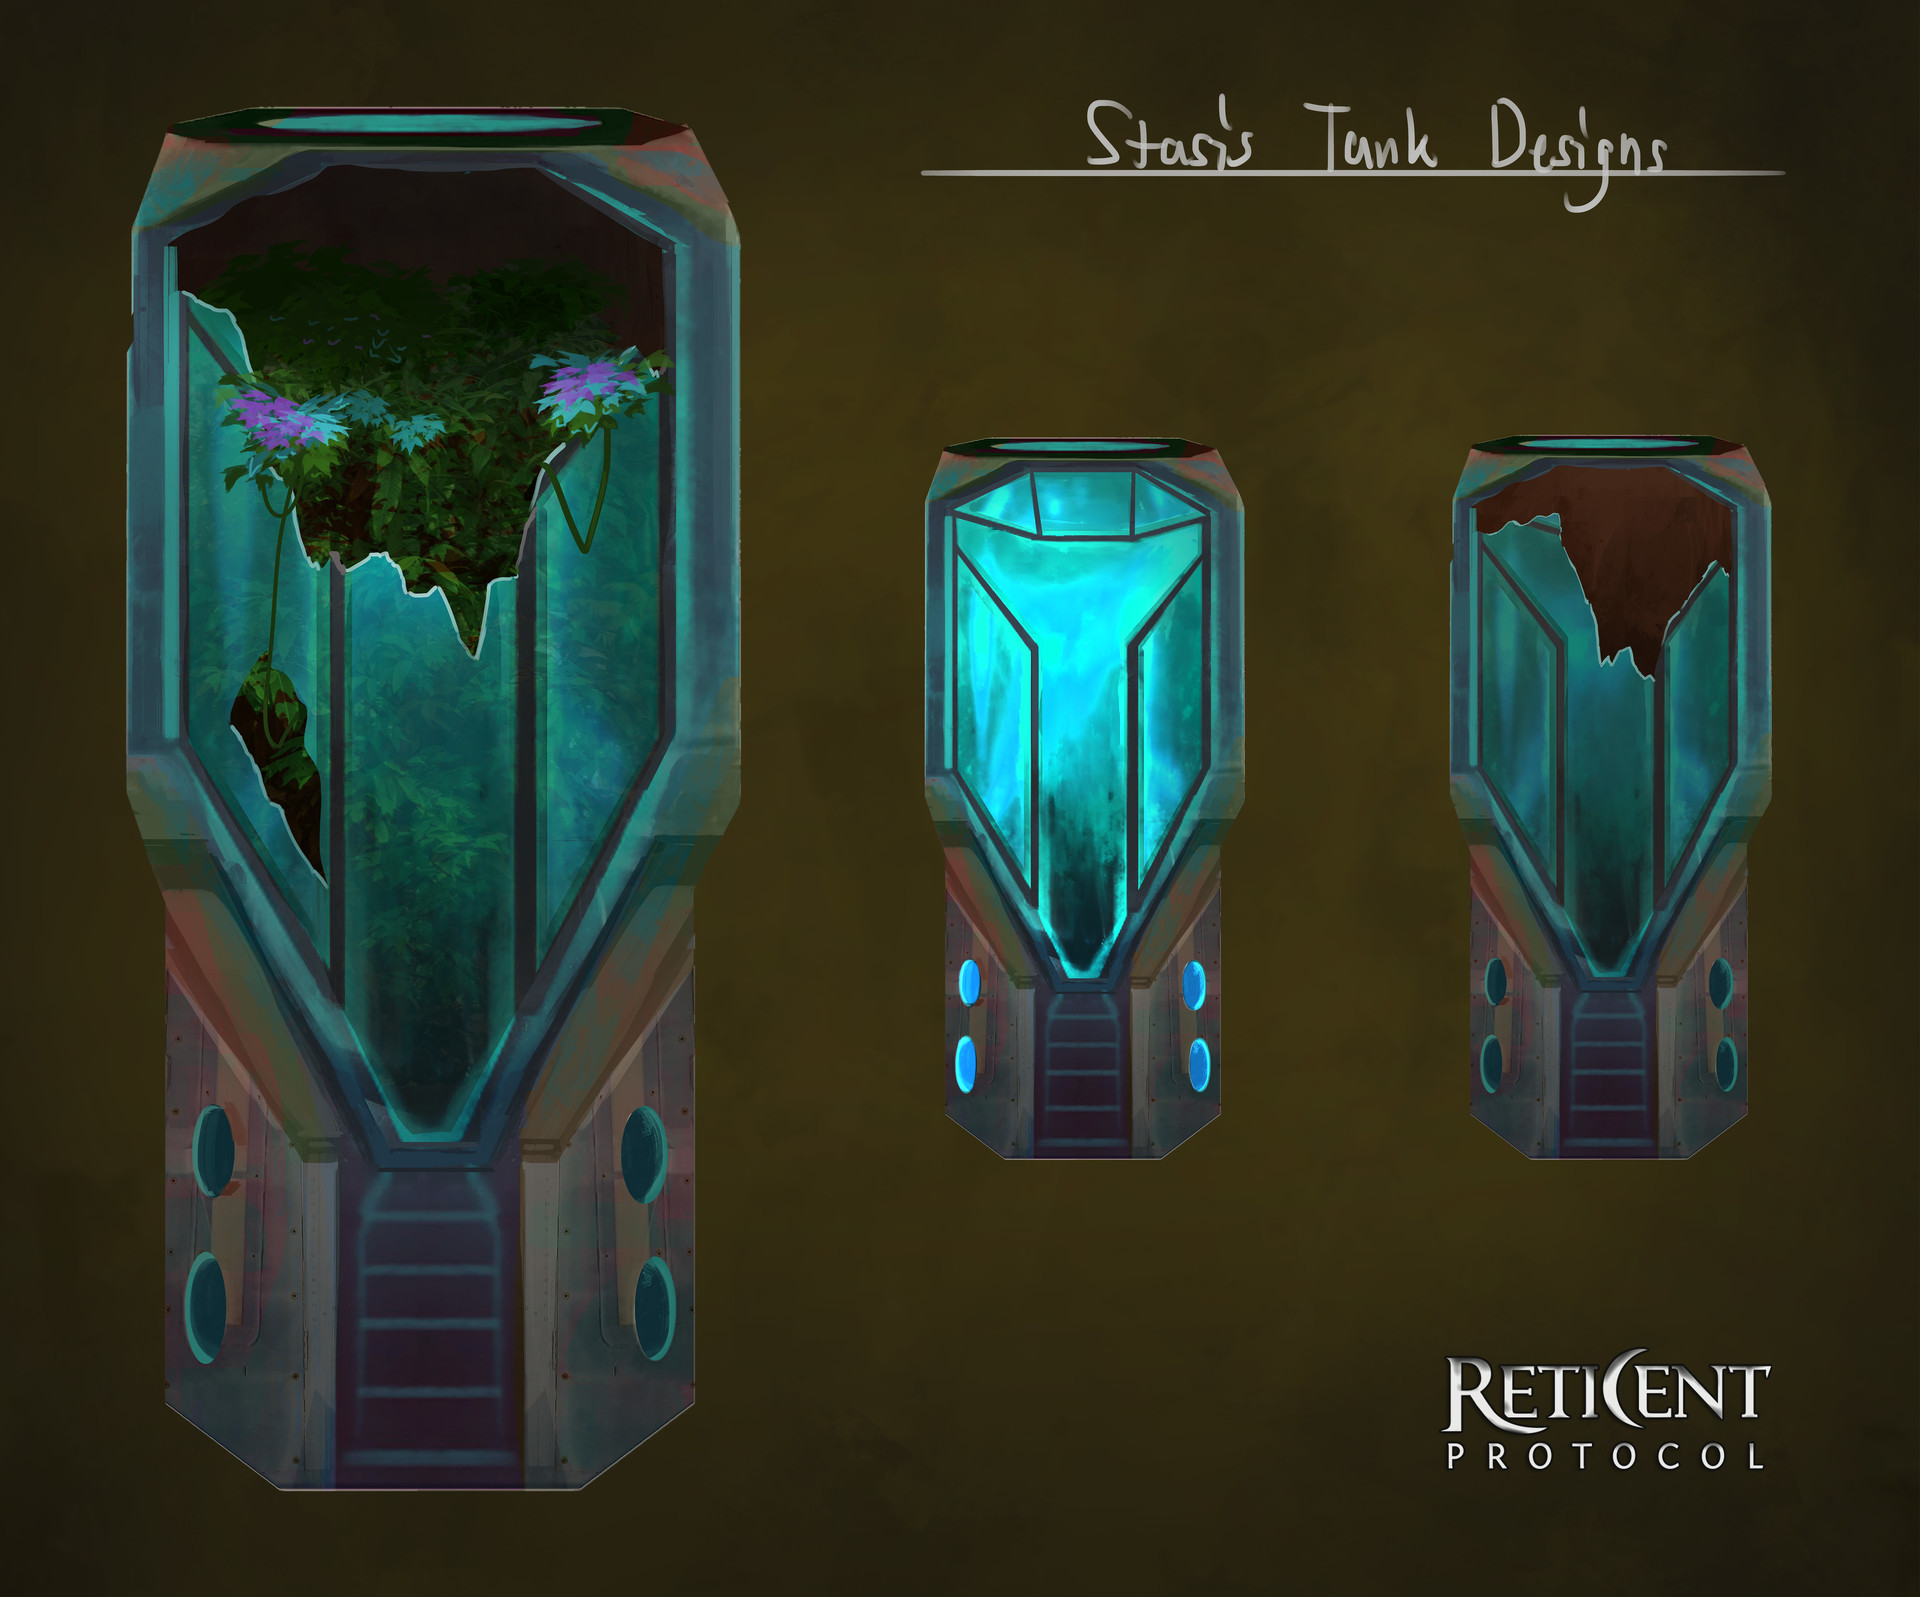 Josh durham stasis tanks designs promotional